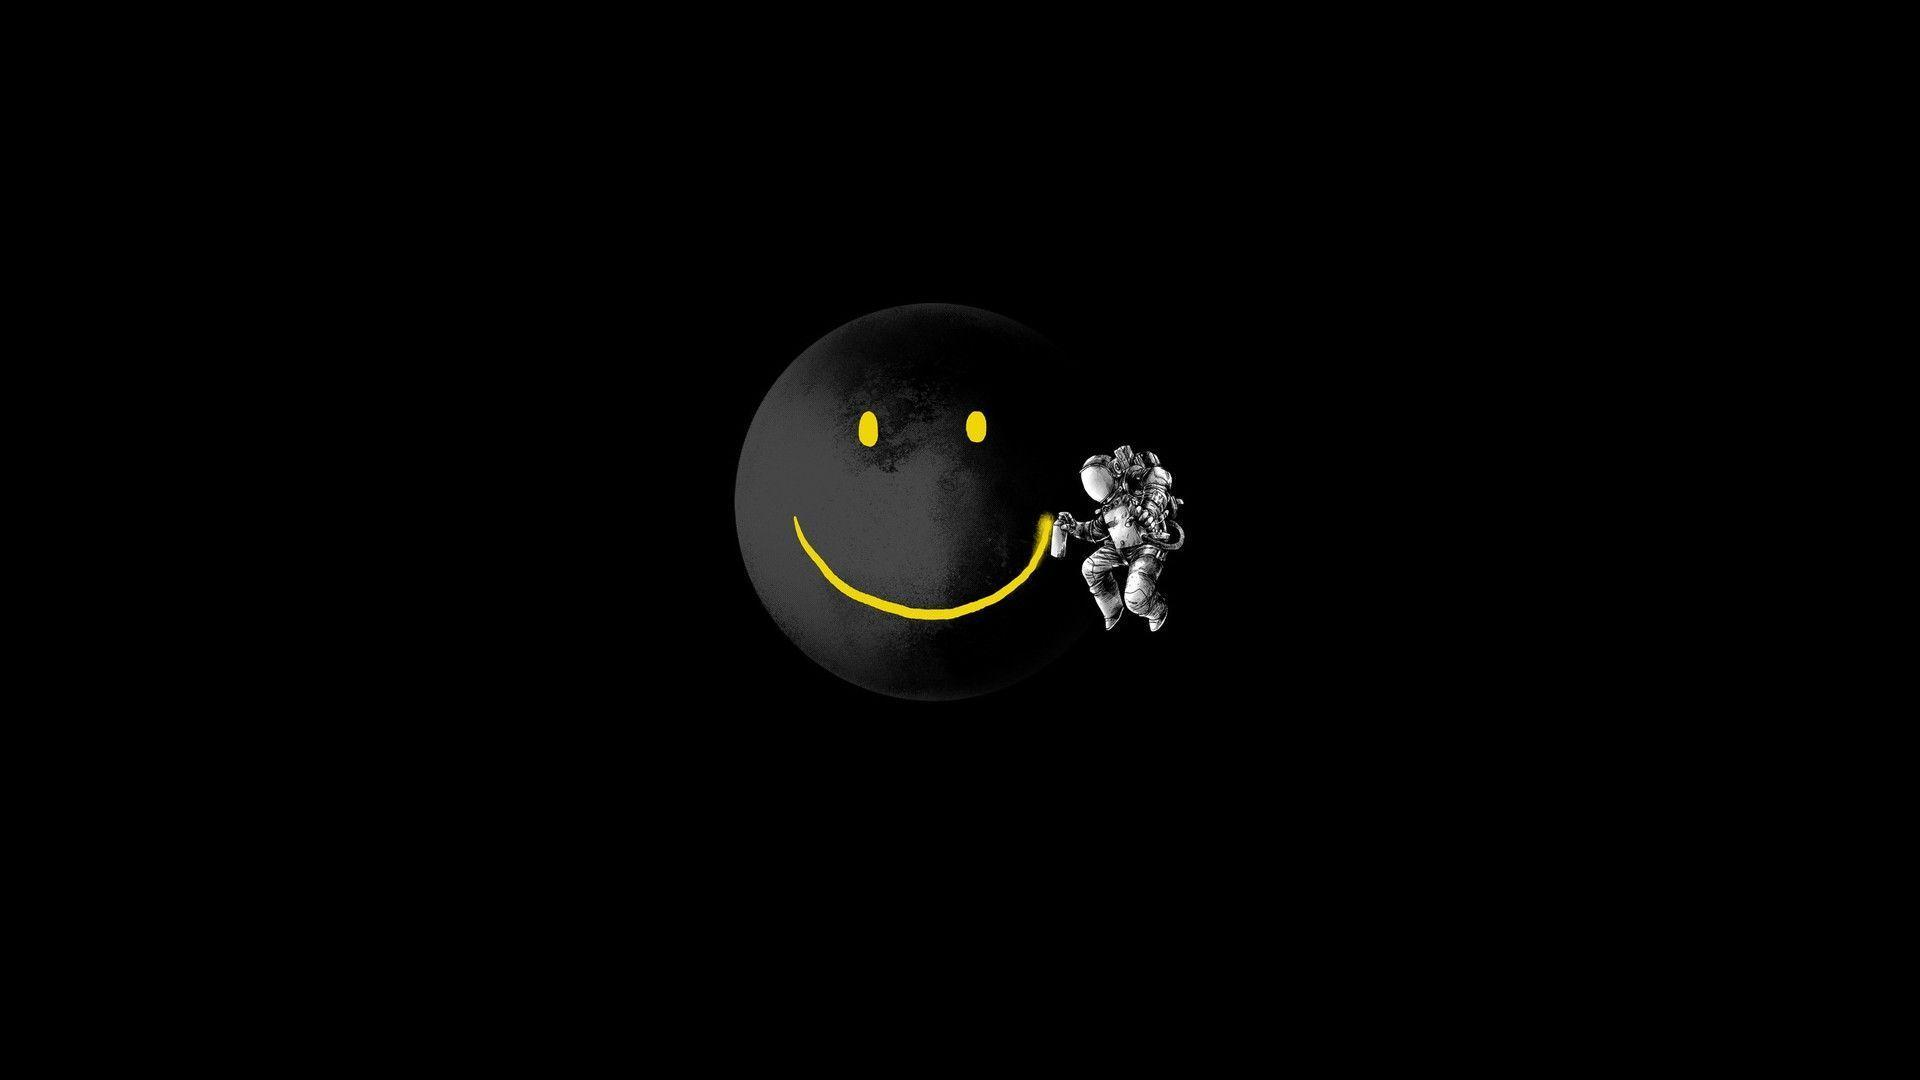 Smiley Face Black Backgrounds - Wallpaper Cave